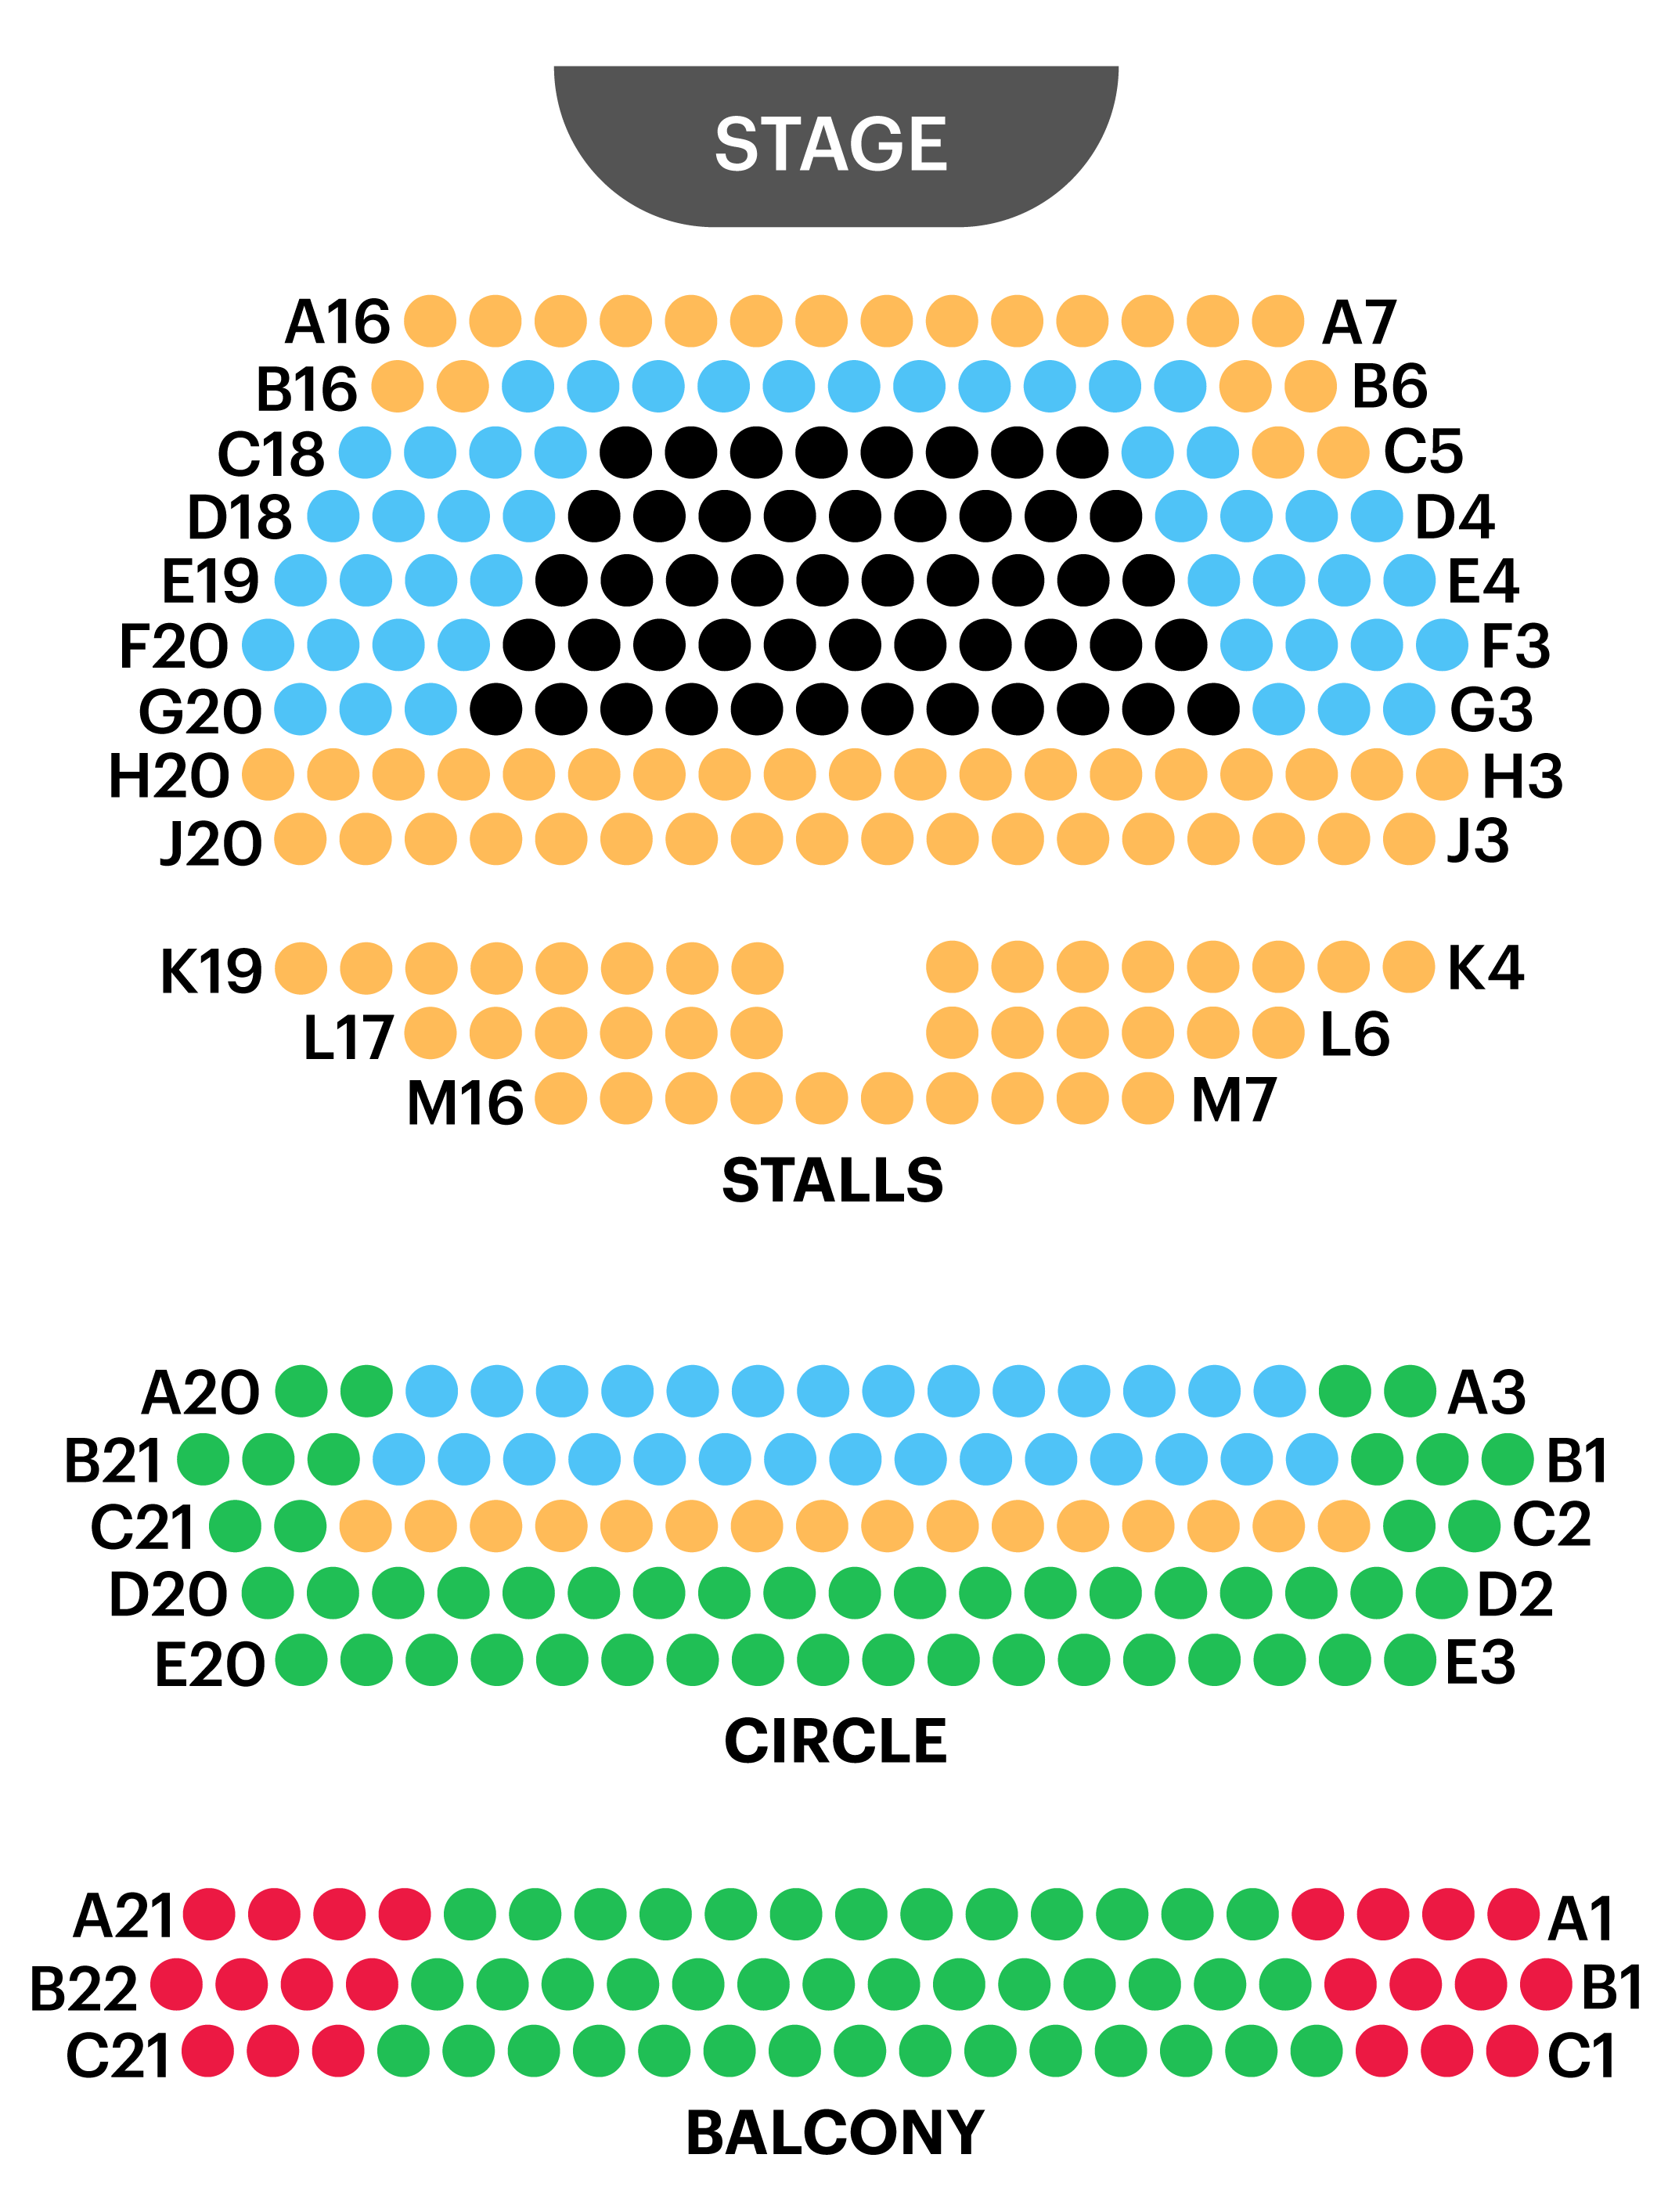 Royal Court Theatre Seating Map